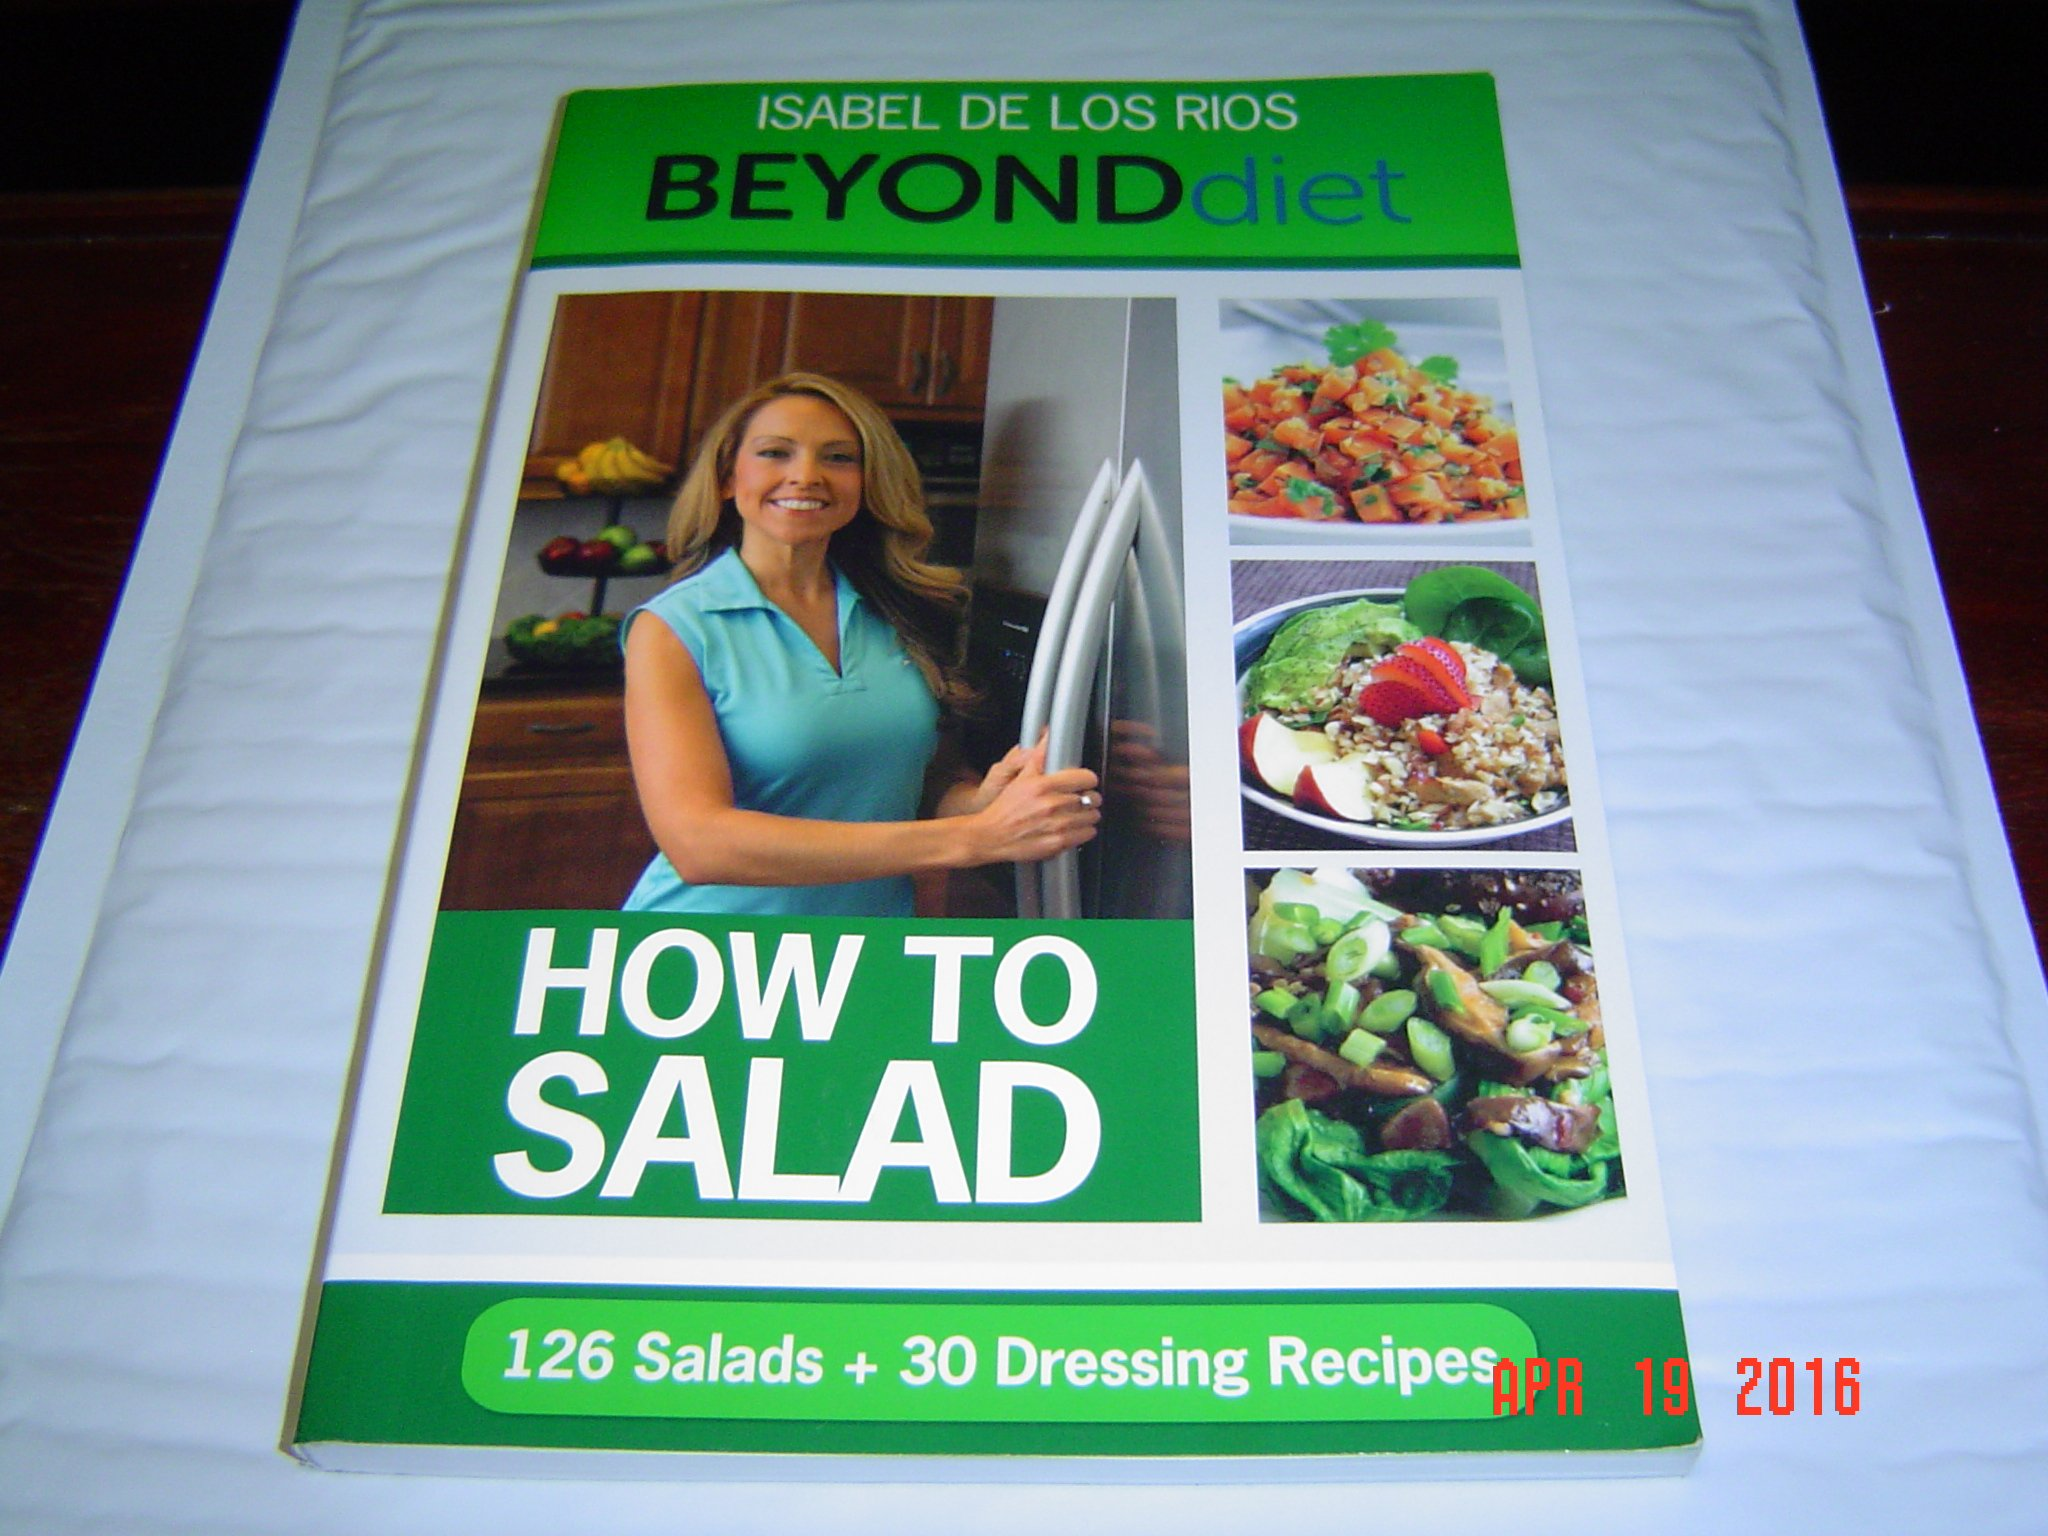 Beyond Diet Salad Isabel Rios product image